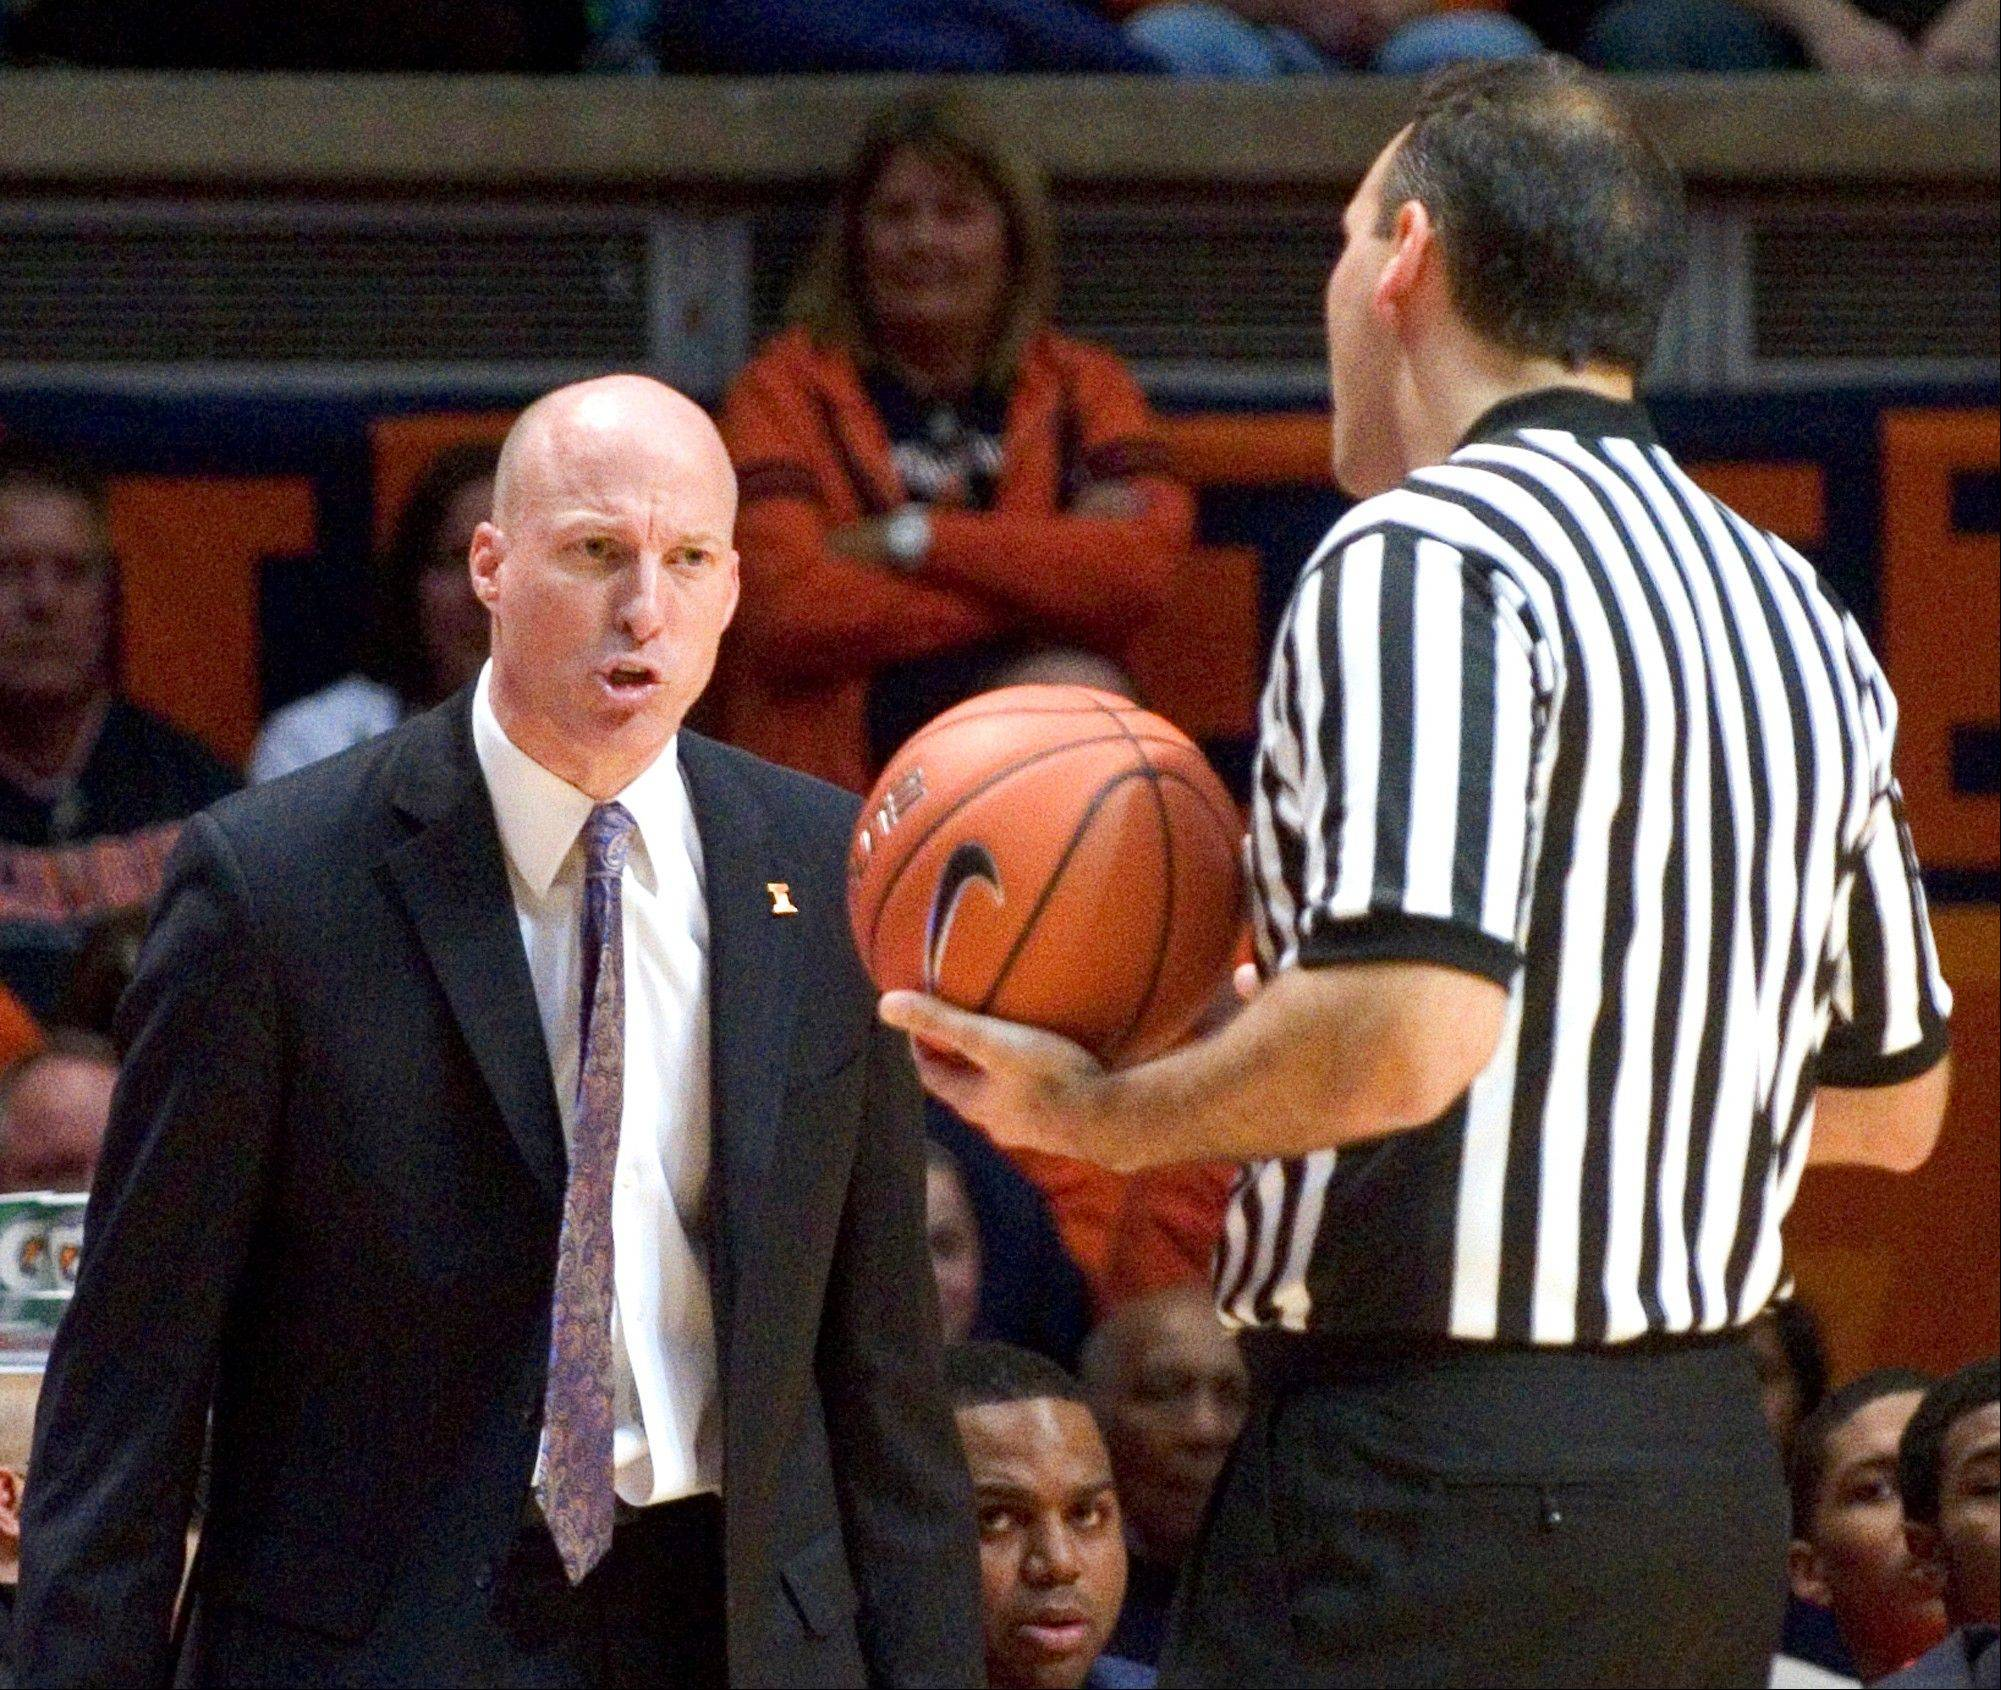 FILE - In this Jan. 18, 2014, file photo, Illinois head coach John Groce has words with a referee during Illinois' 78-62 loss to Michigan State in an NCAA college basketball game in Champaign, Ill. Groce said Wednesday, Jan. 22, 2014, that he went too far in a series of outbursts during the loss.